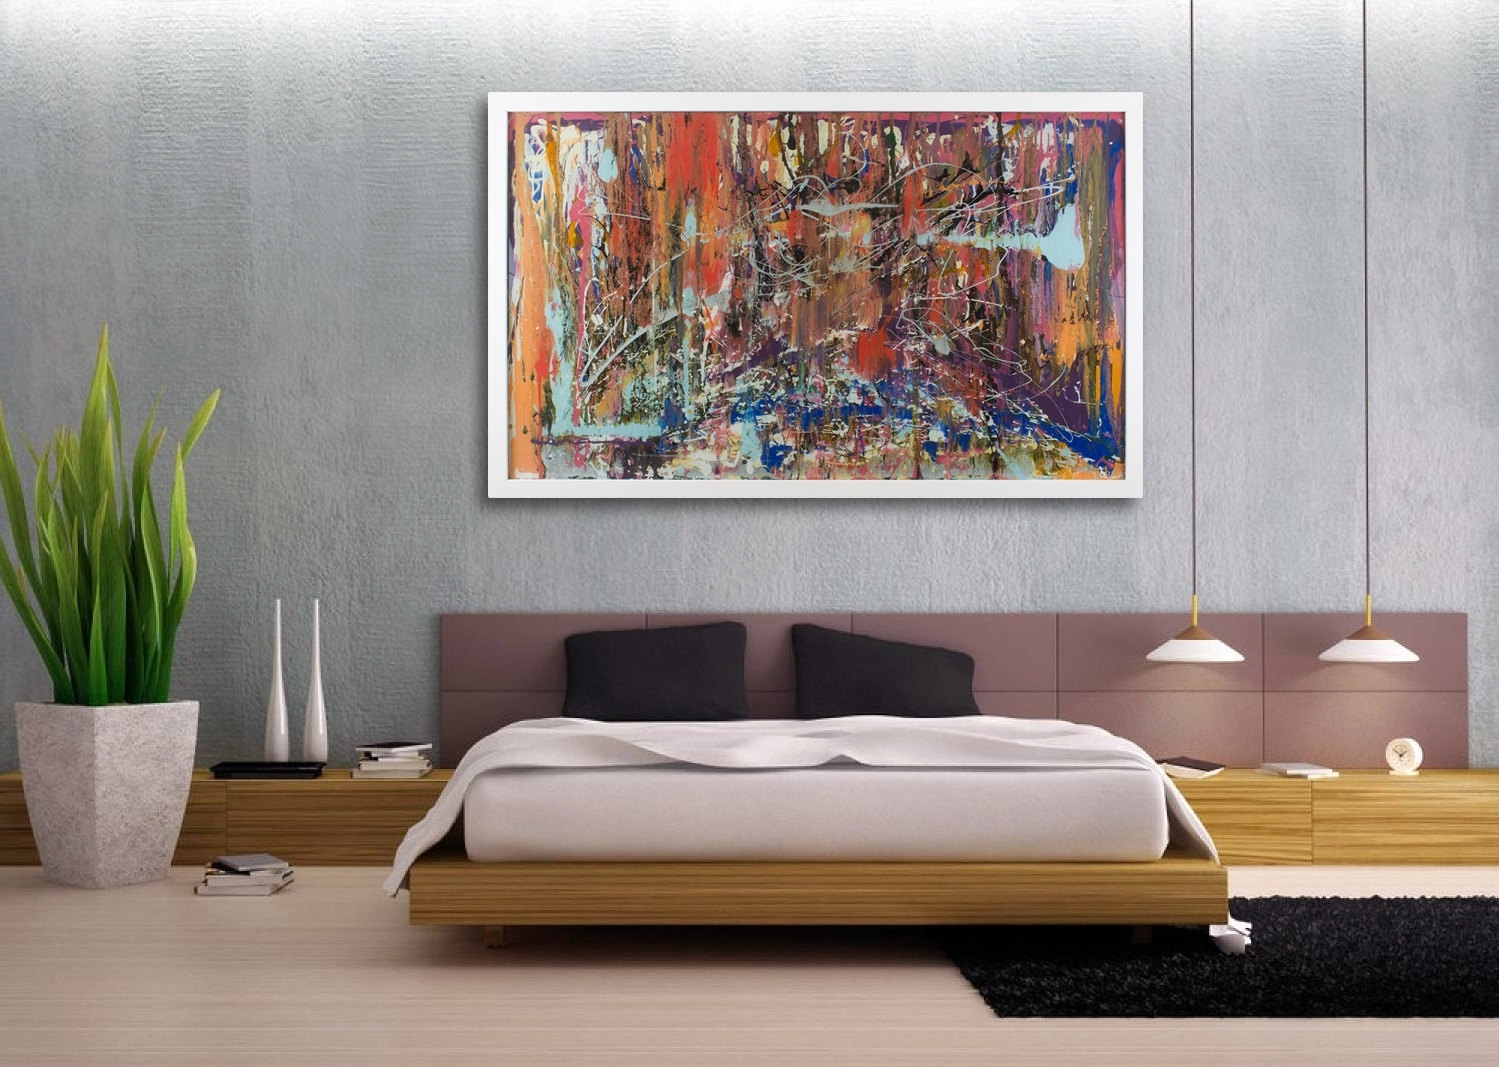 Innovative Way Modern Wall Decor Room — Joanne Russo Homesjoanne Throughout Most Up To Date Big Abstract Wall Art (Gallery 2 of 20)